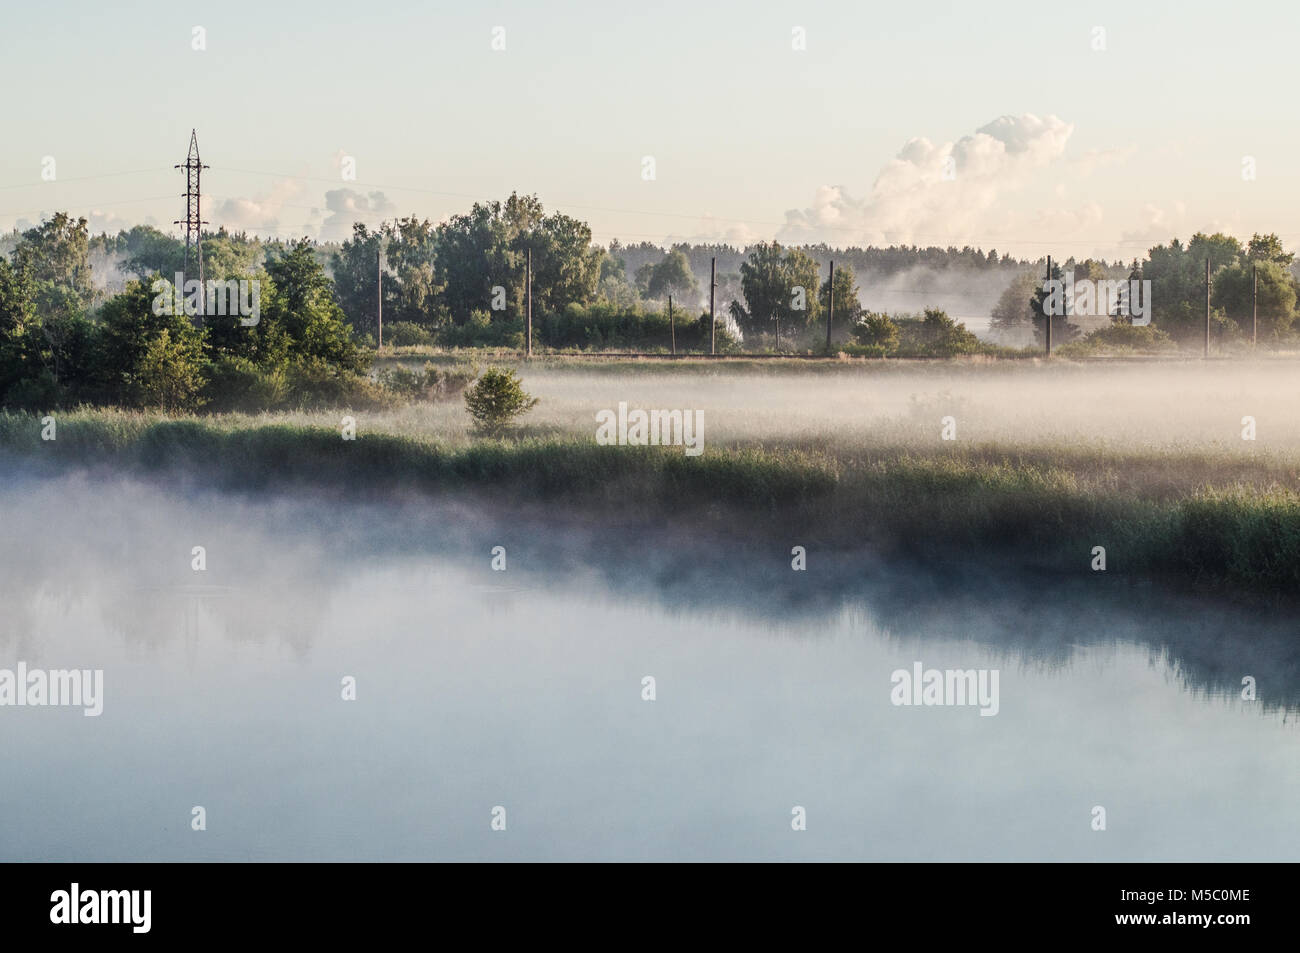 White morning fog over a green grass field near the lake. - Stock Image